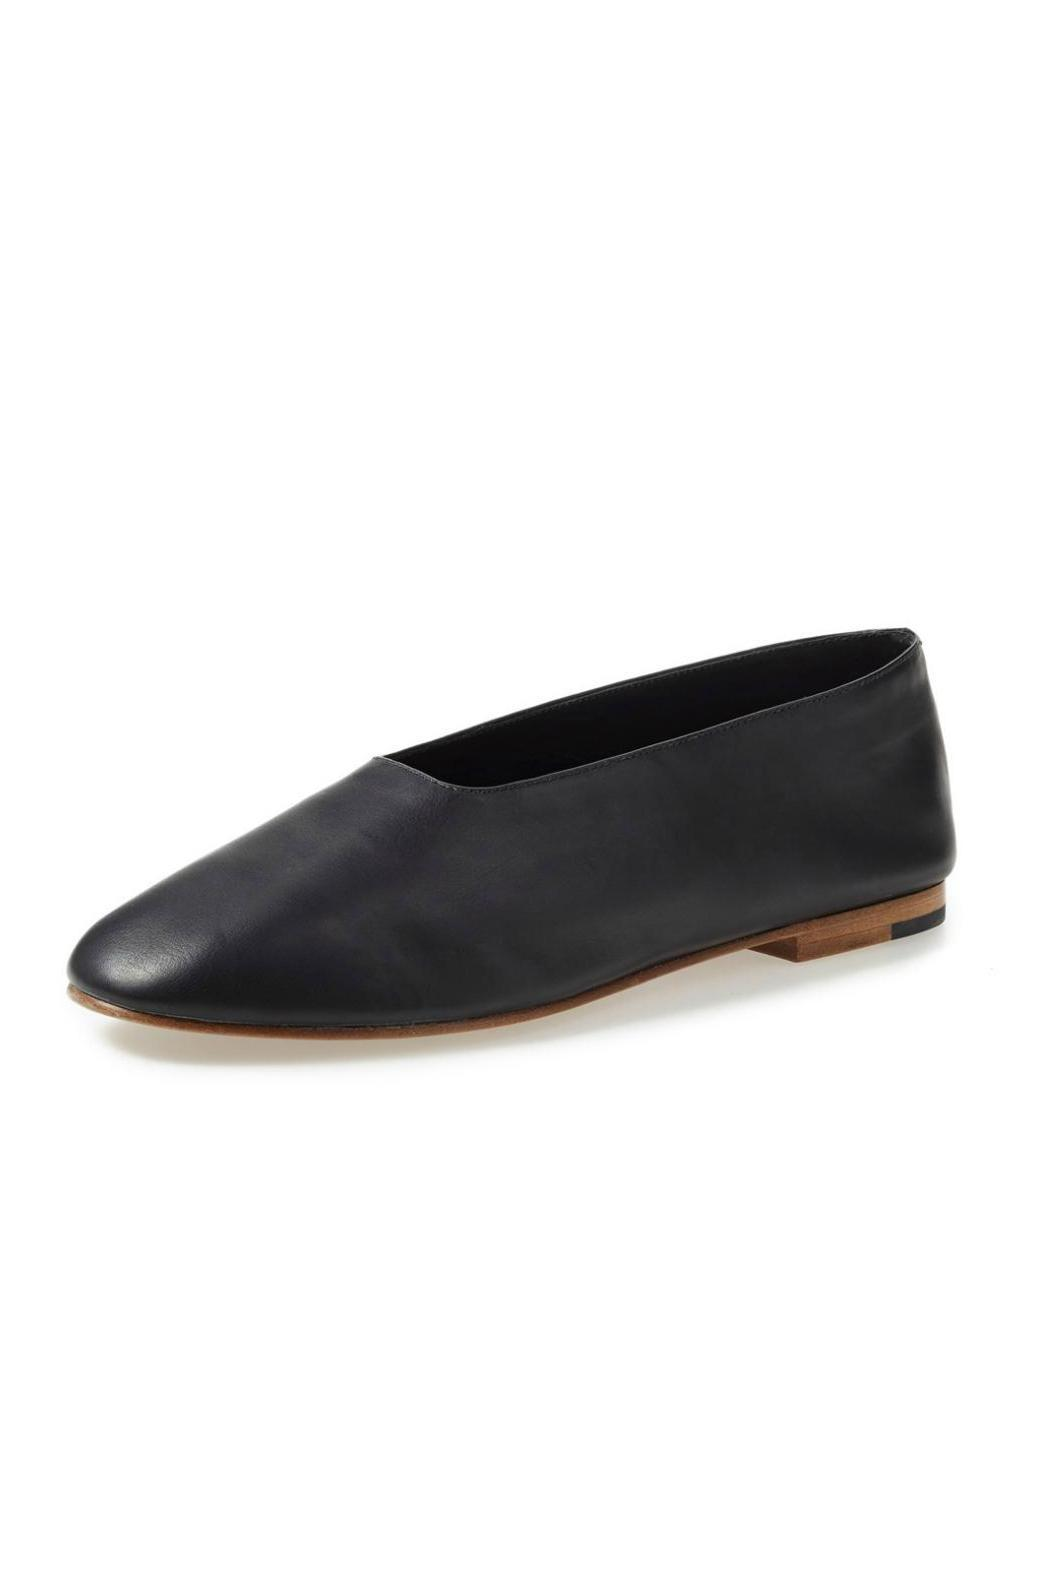 Vince Maxwell Ballet Flat from New